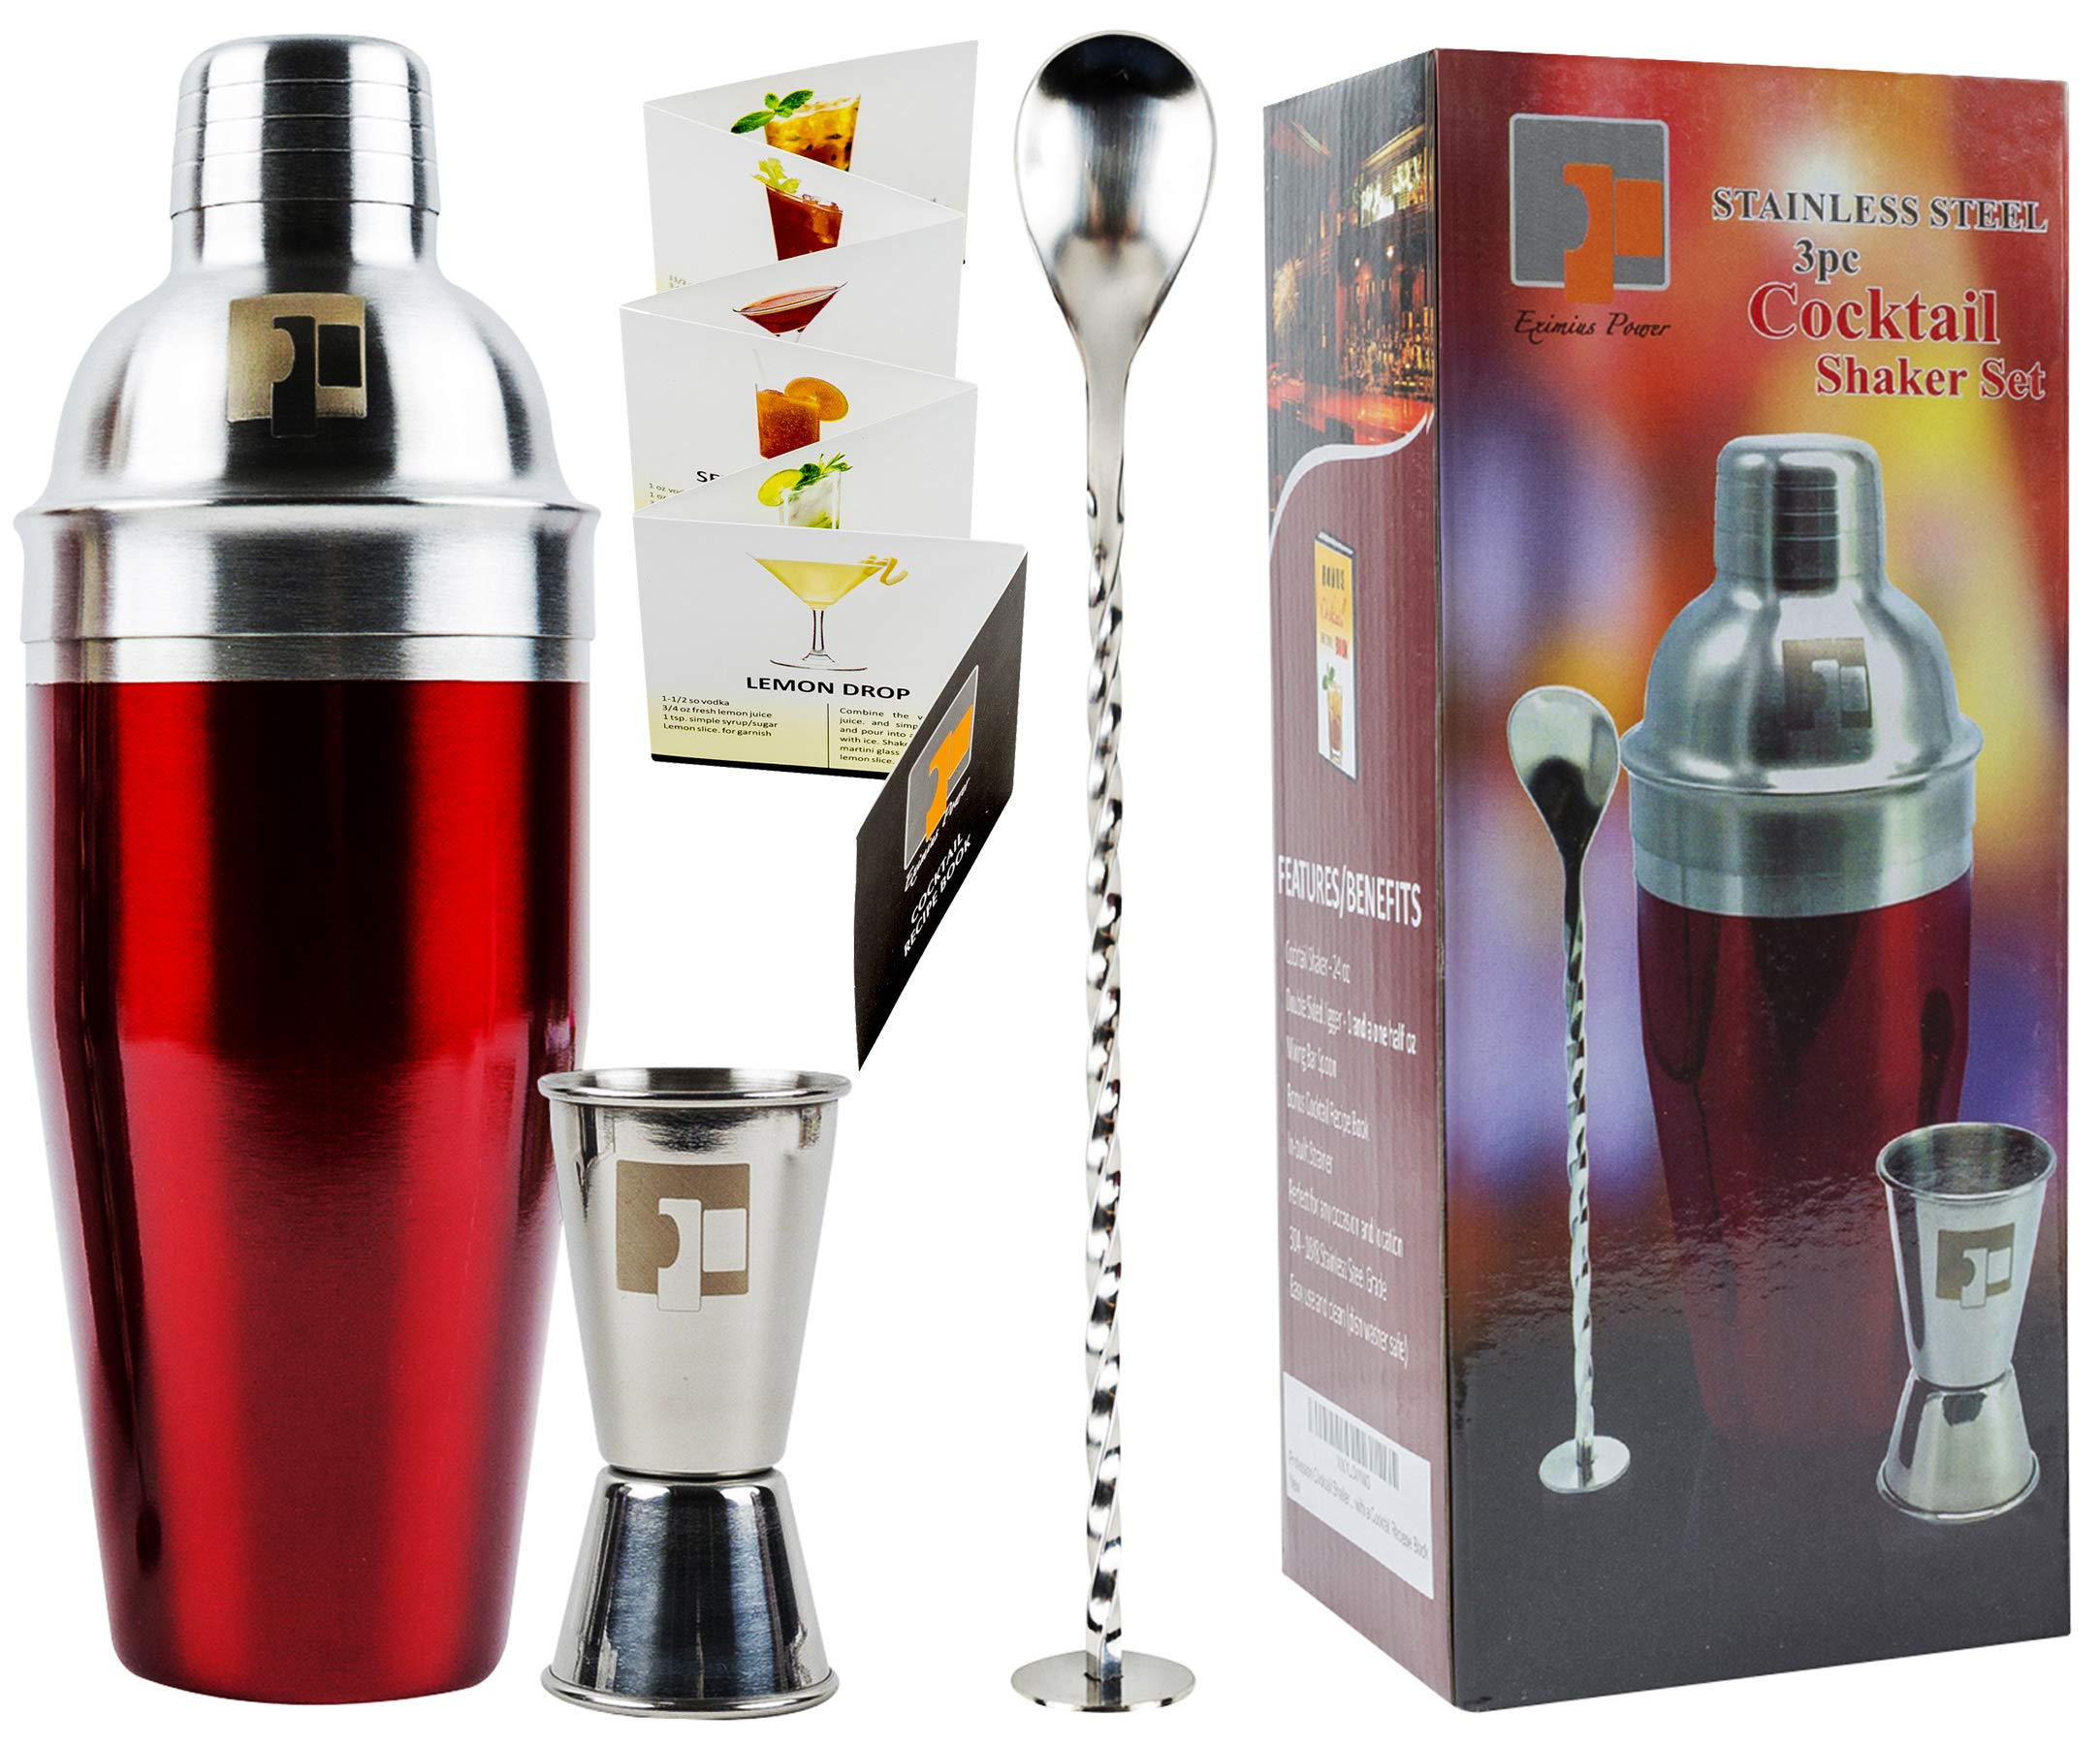 Eximius Power Stainless Steel Cocktail Shaker Set Gift Box | 3pc Bar tool accessories | Bartender Martini Drink Mixer built-in Strainer, Double Jigger, Mixing Spoon & Recipe Book